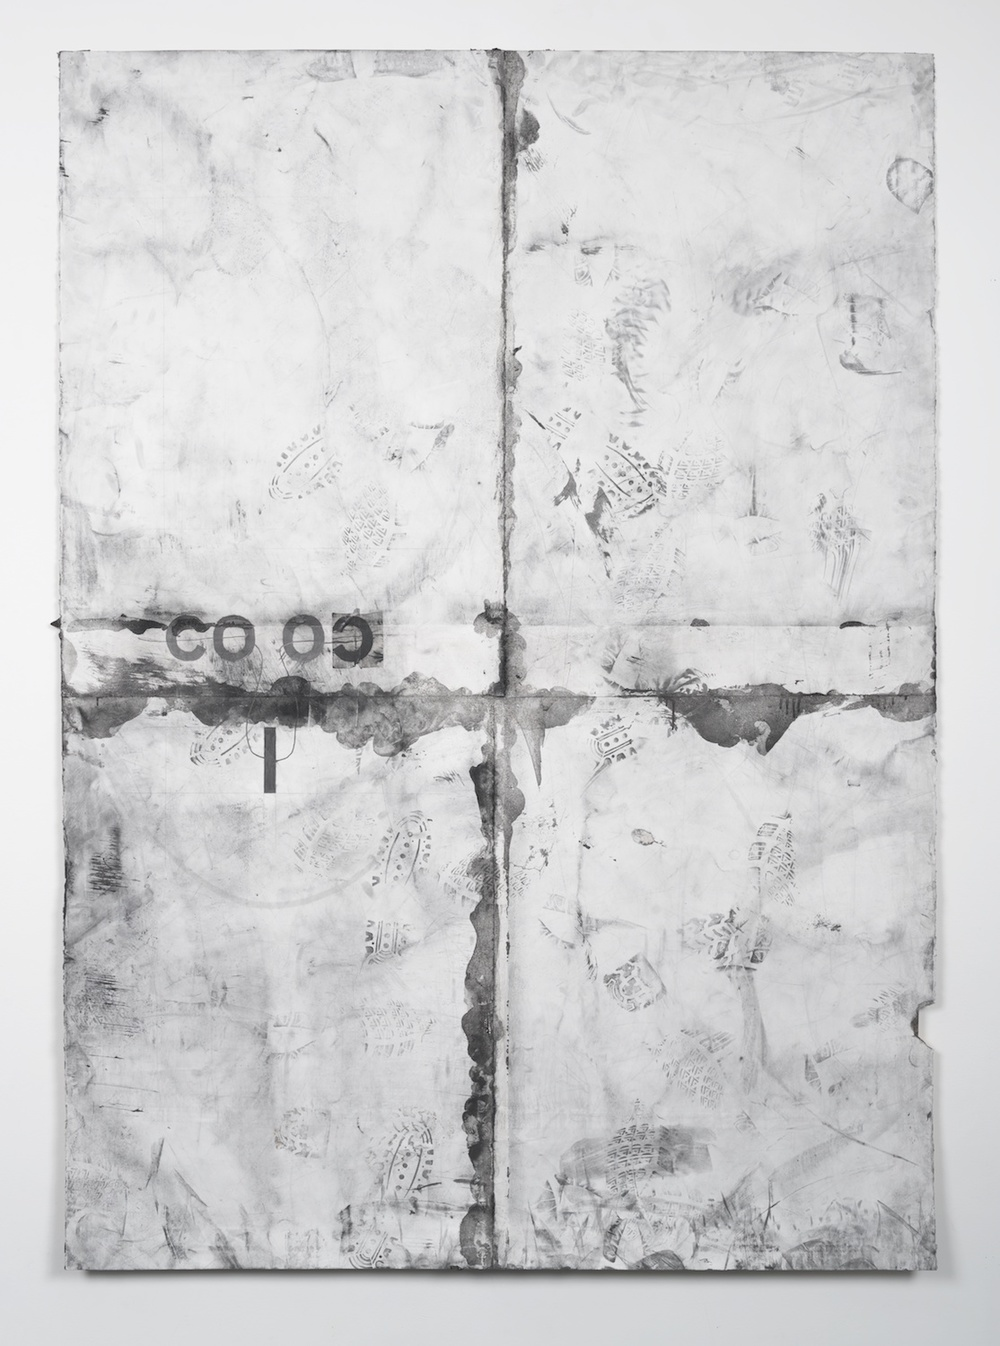 Tony Lewis  coloc  2014 Pencil, graphite powder, and tape on paper 84h x 60w in TL123